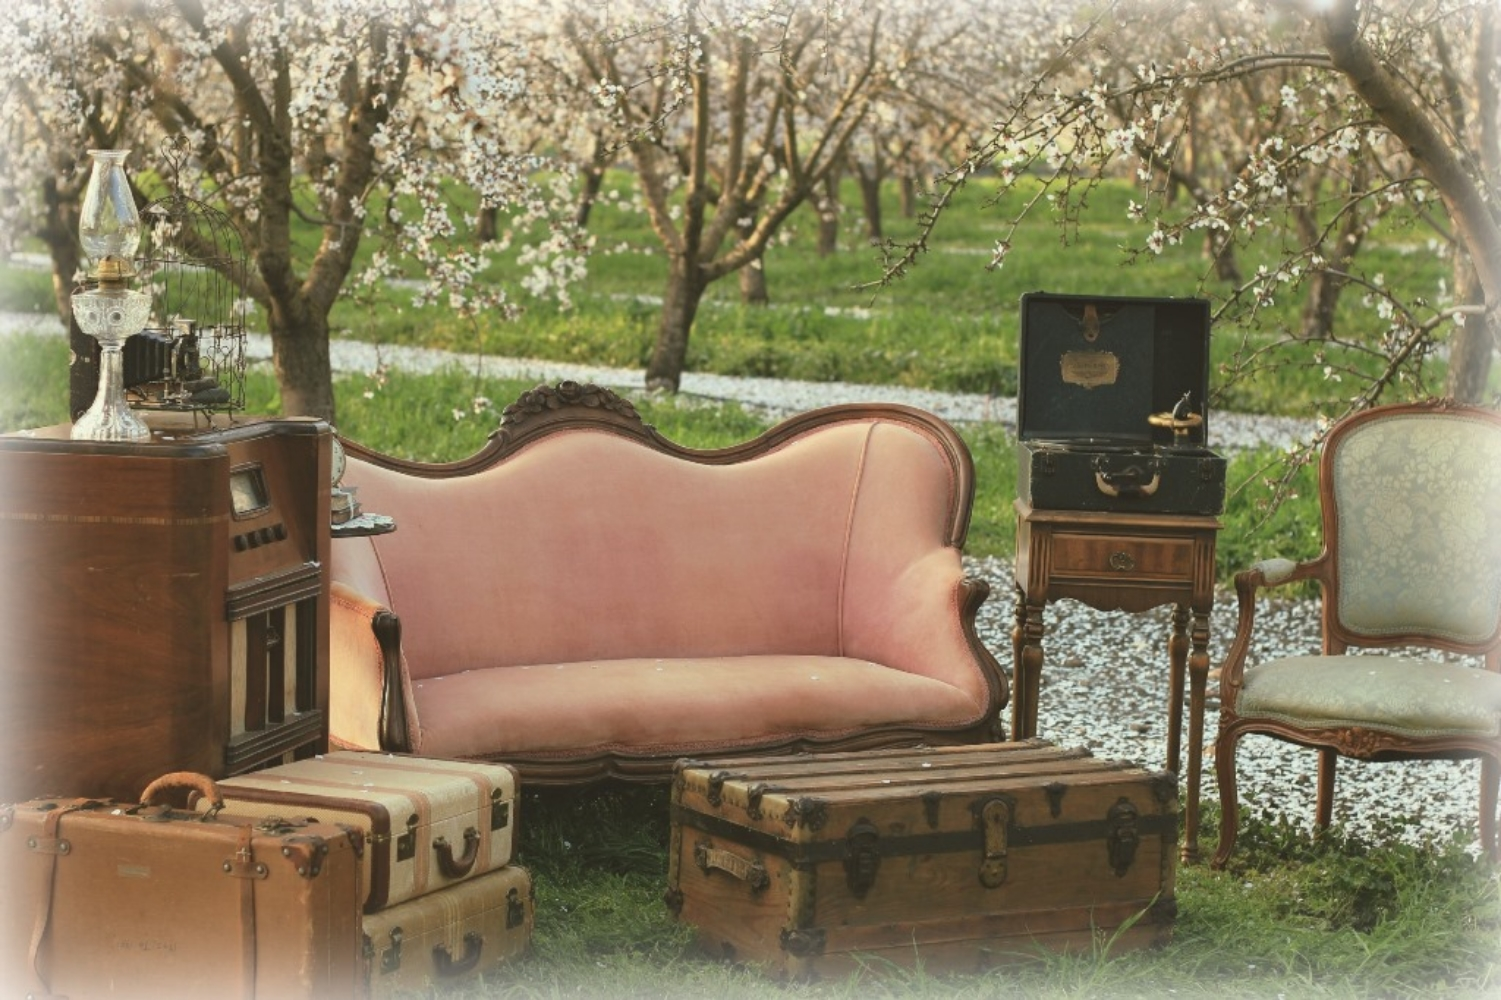 almond orchard vintage lounge - vintage furniture rentals